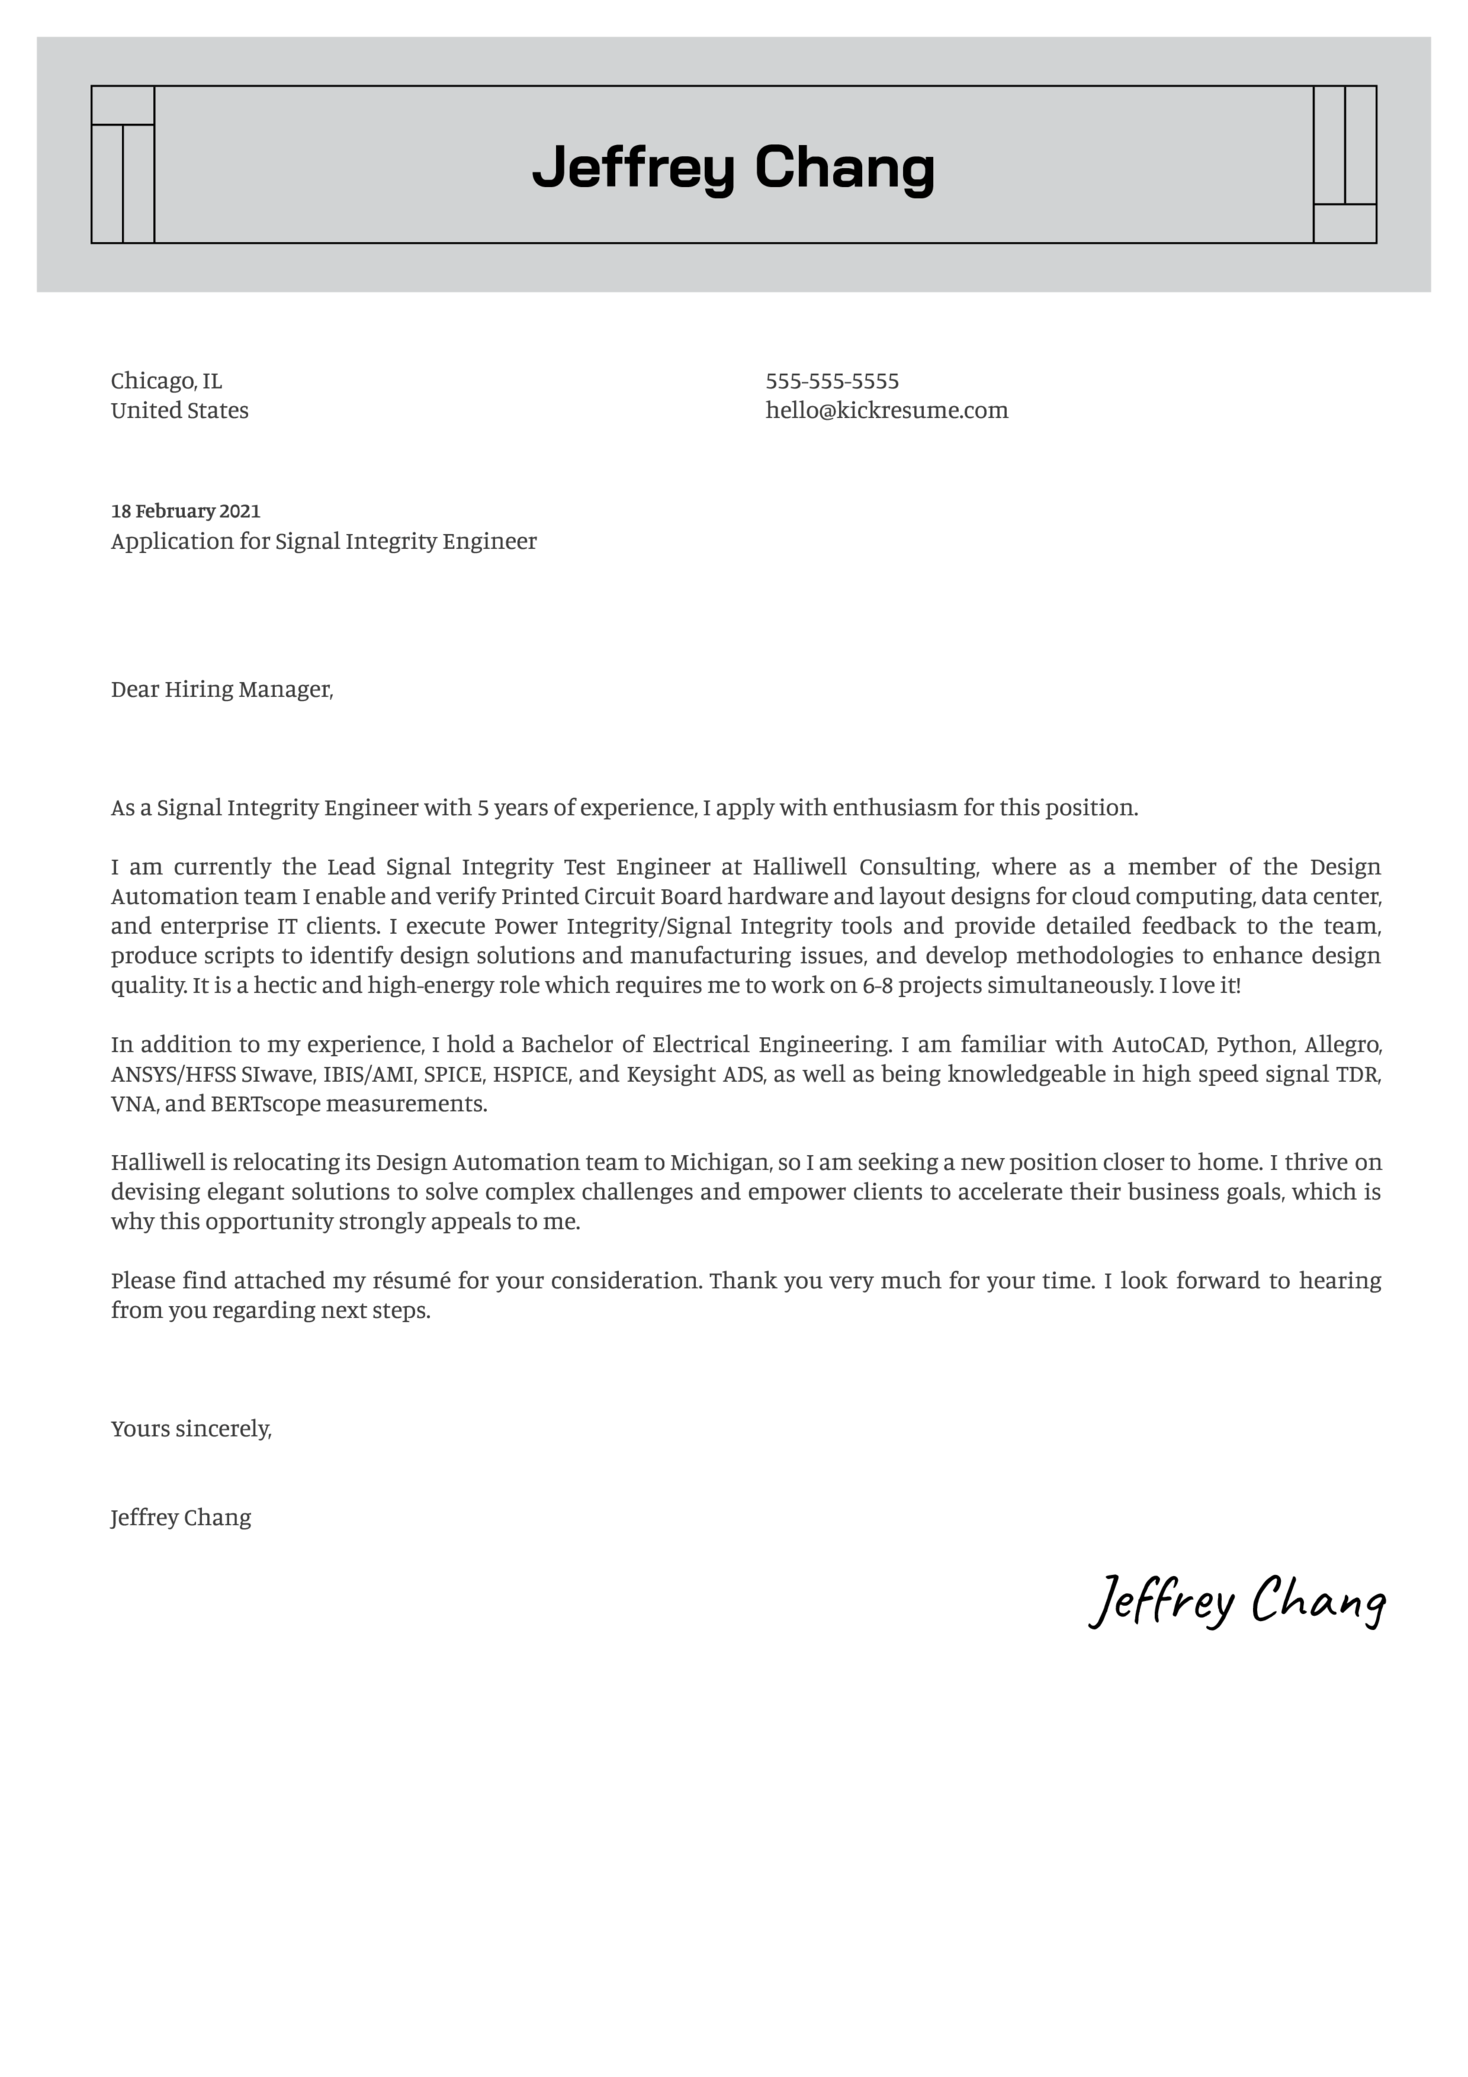 Signal Integrity Engineer Cover Letter Sample